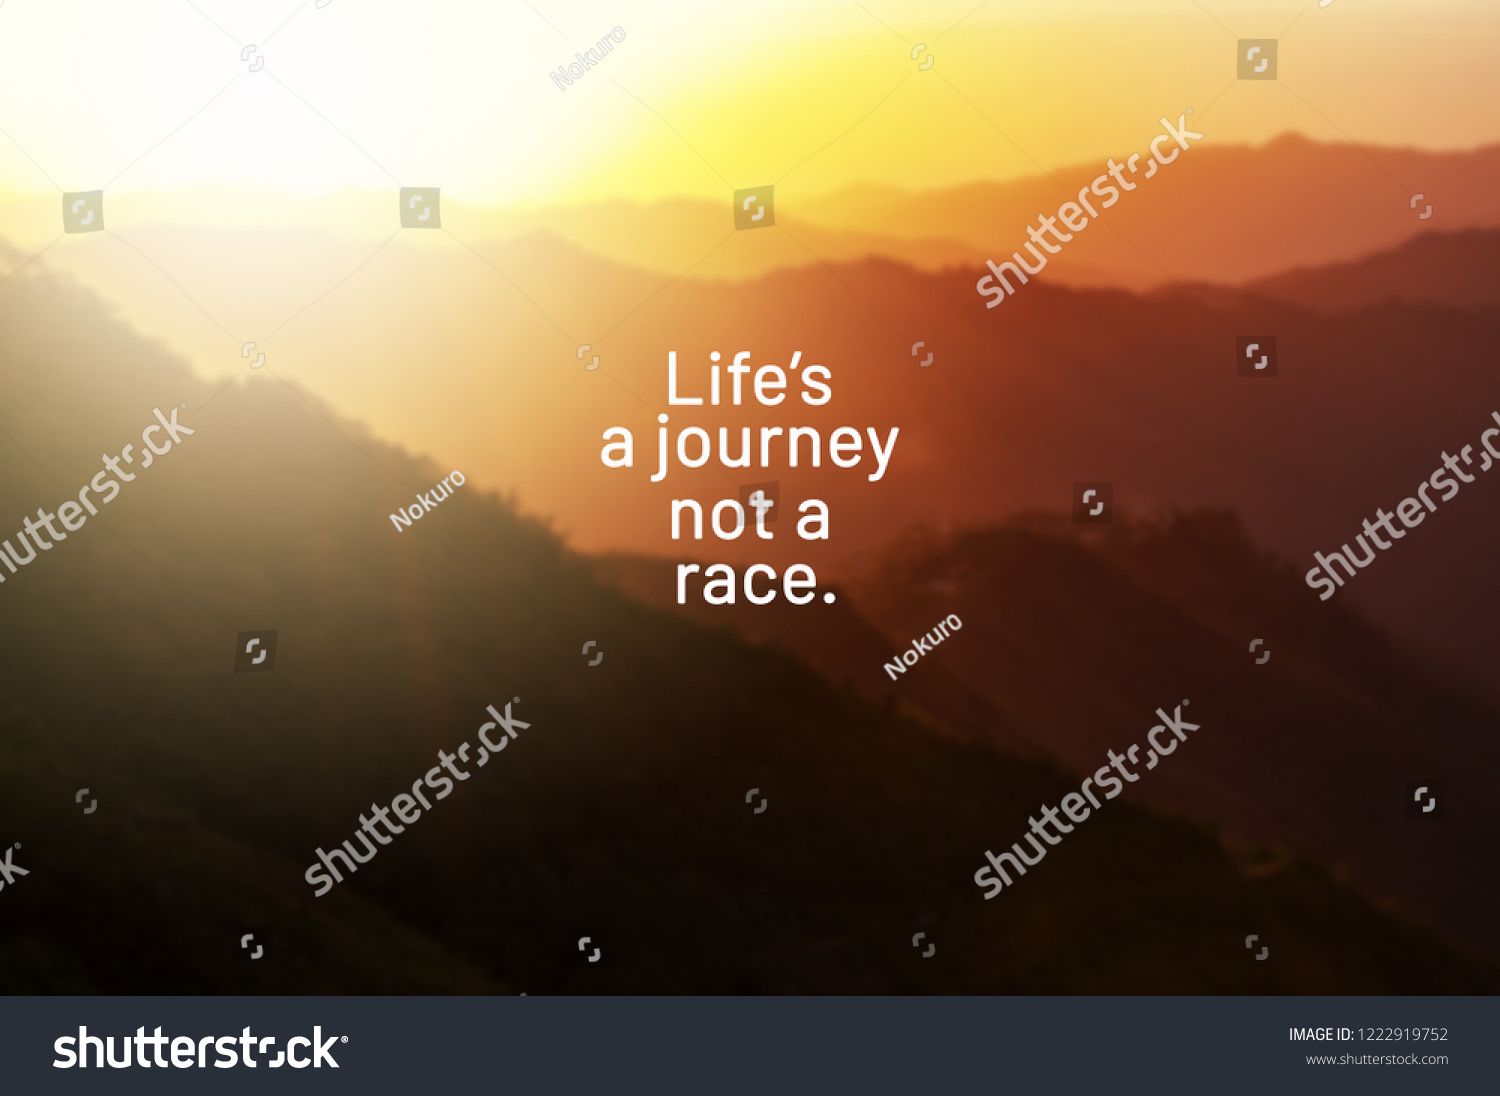 Inspirational Life Quotes Lifes Journey Not Stock Photo Edit Now